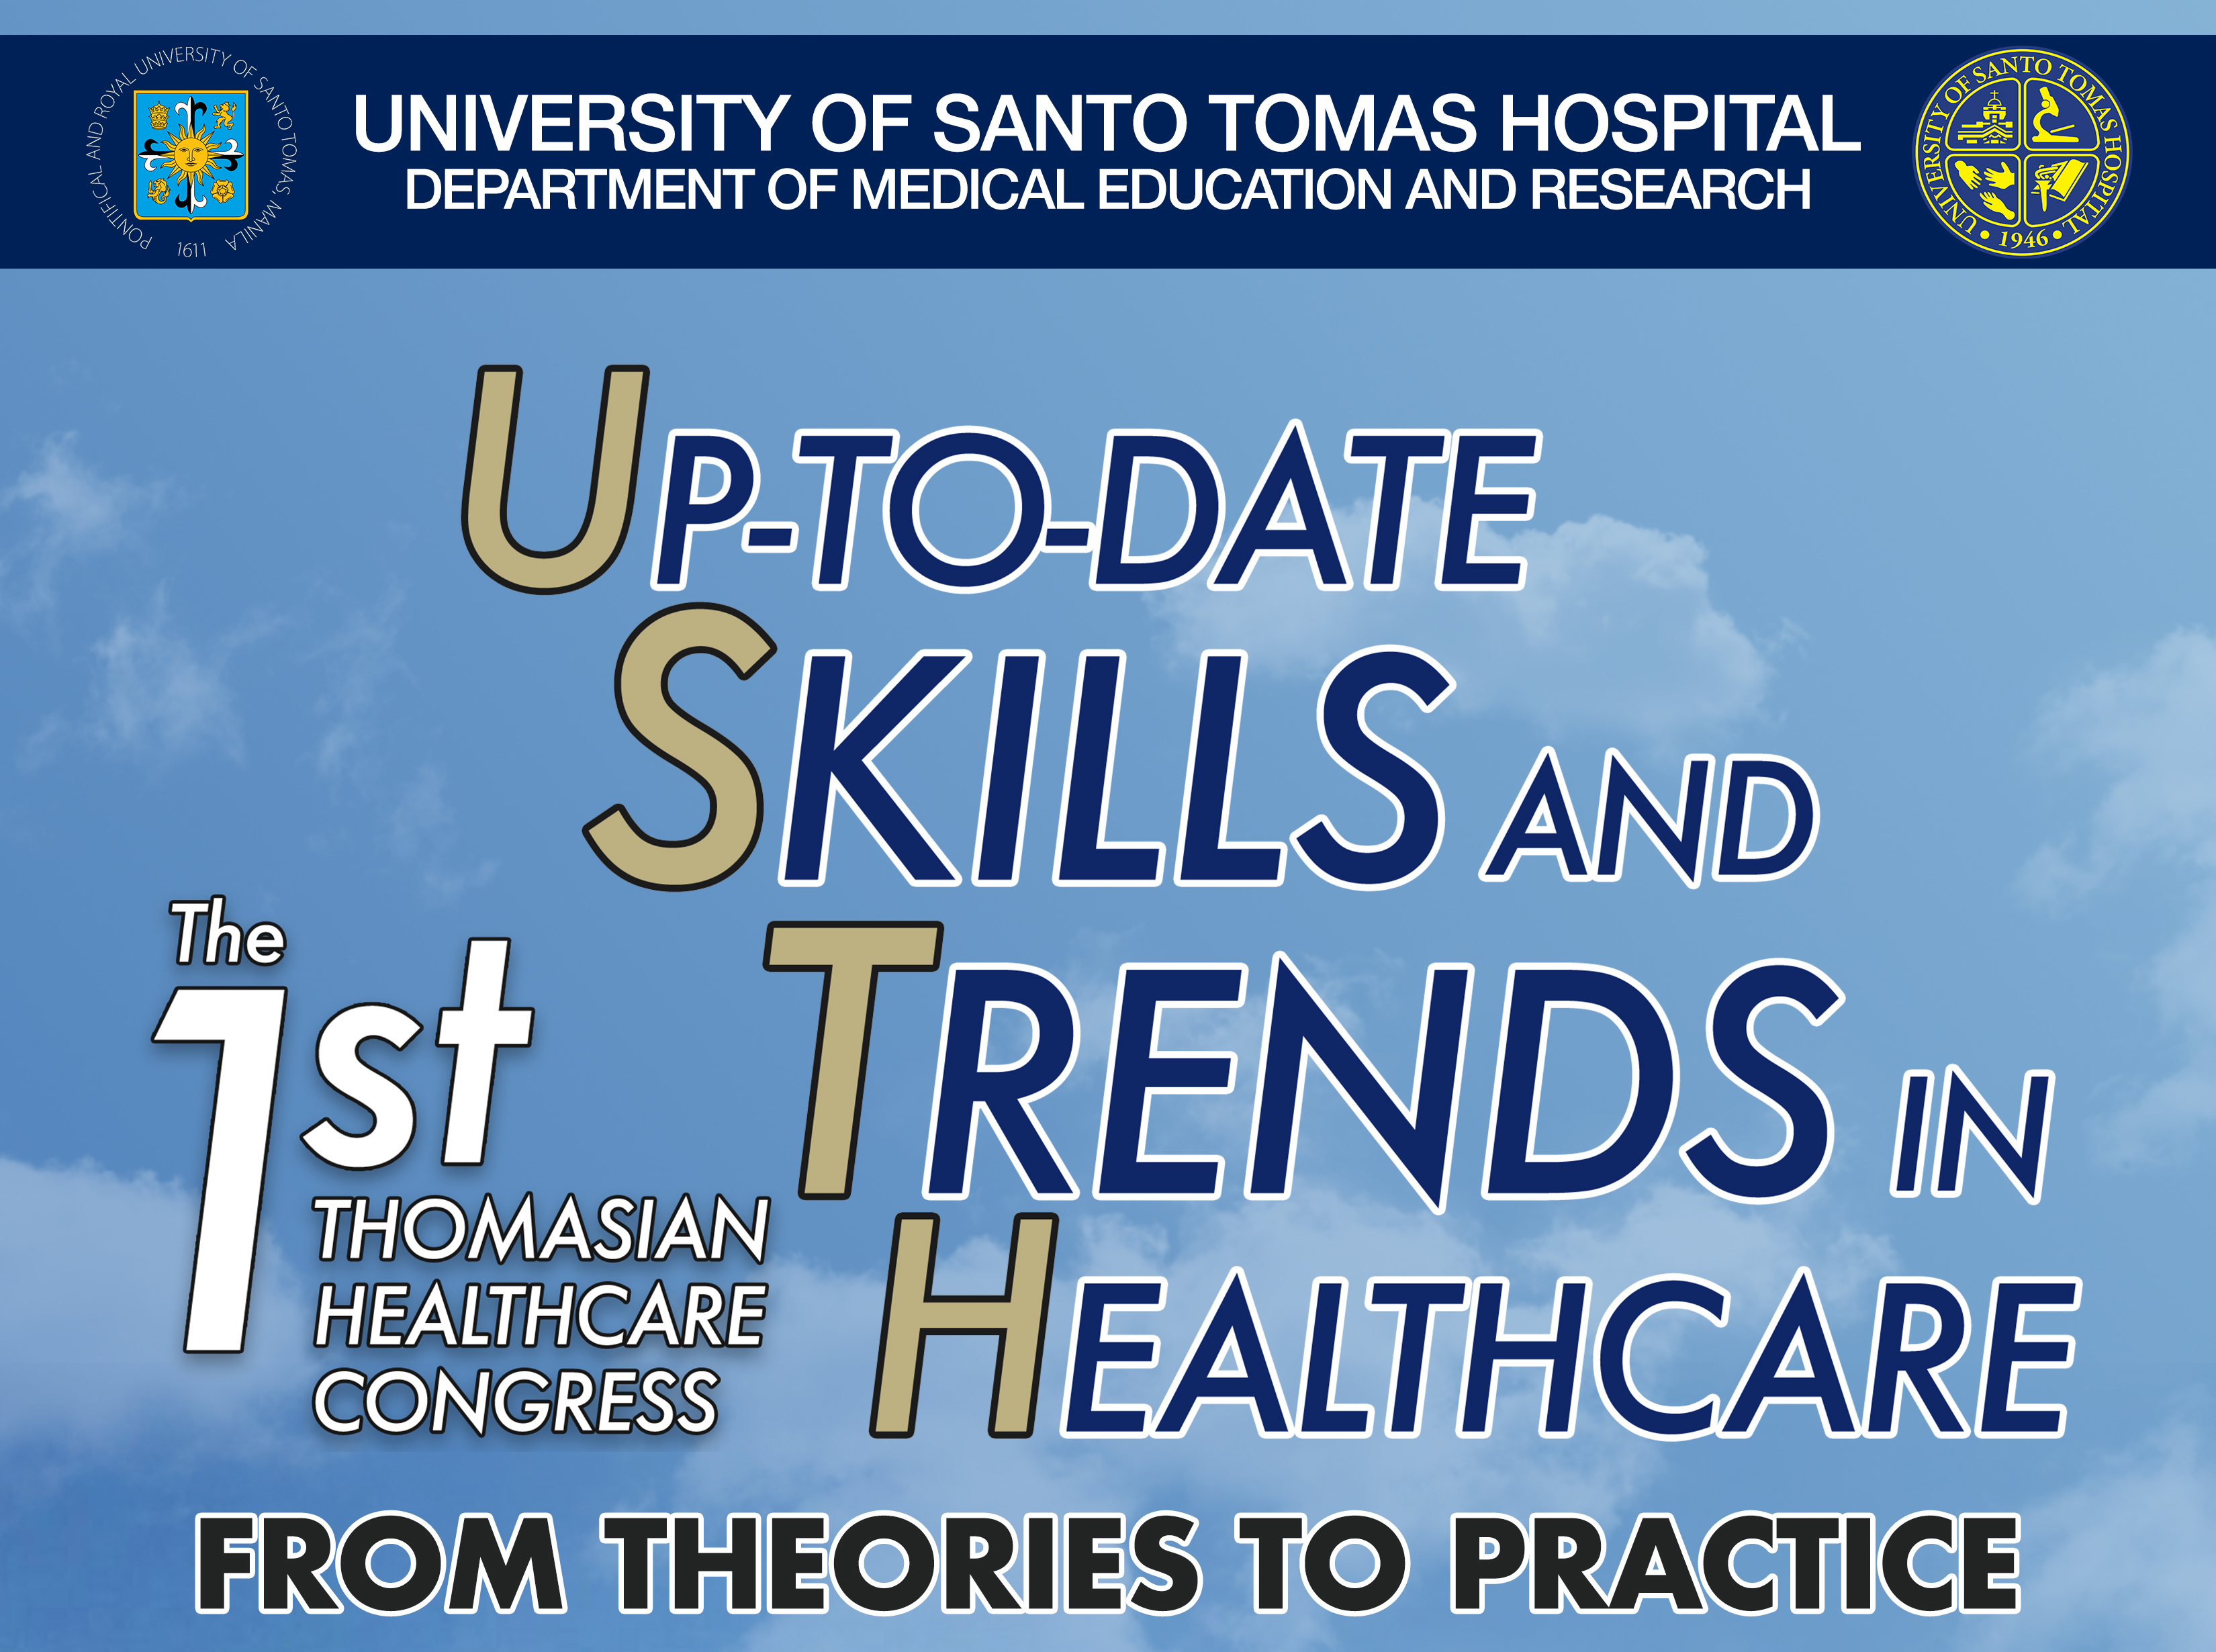 USTH: Up-to-date Skills and Trends in Healthcare: from theory to practice